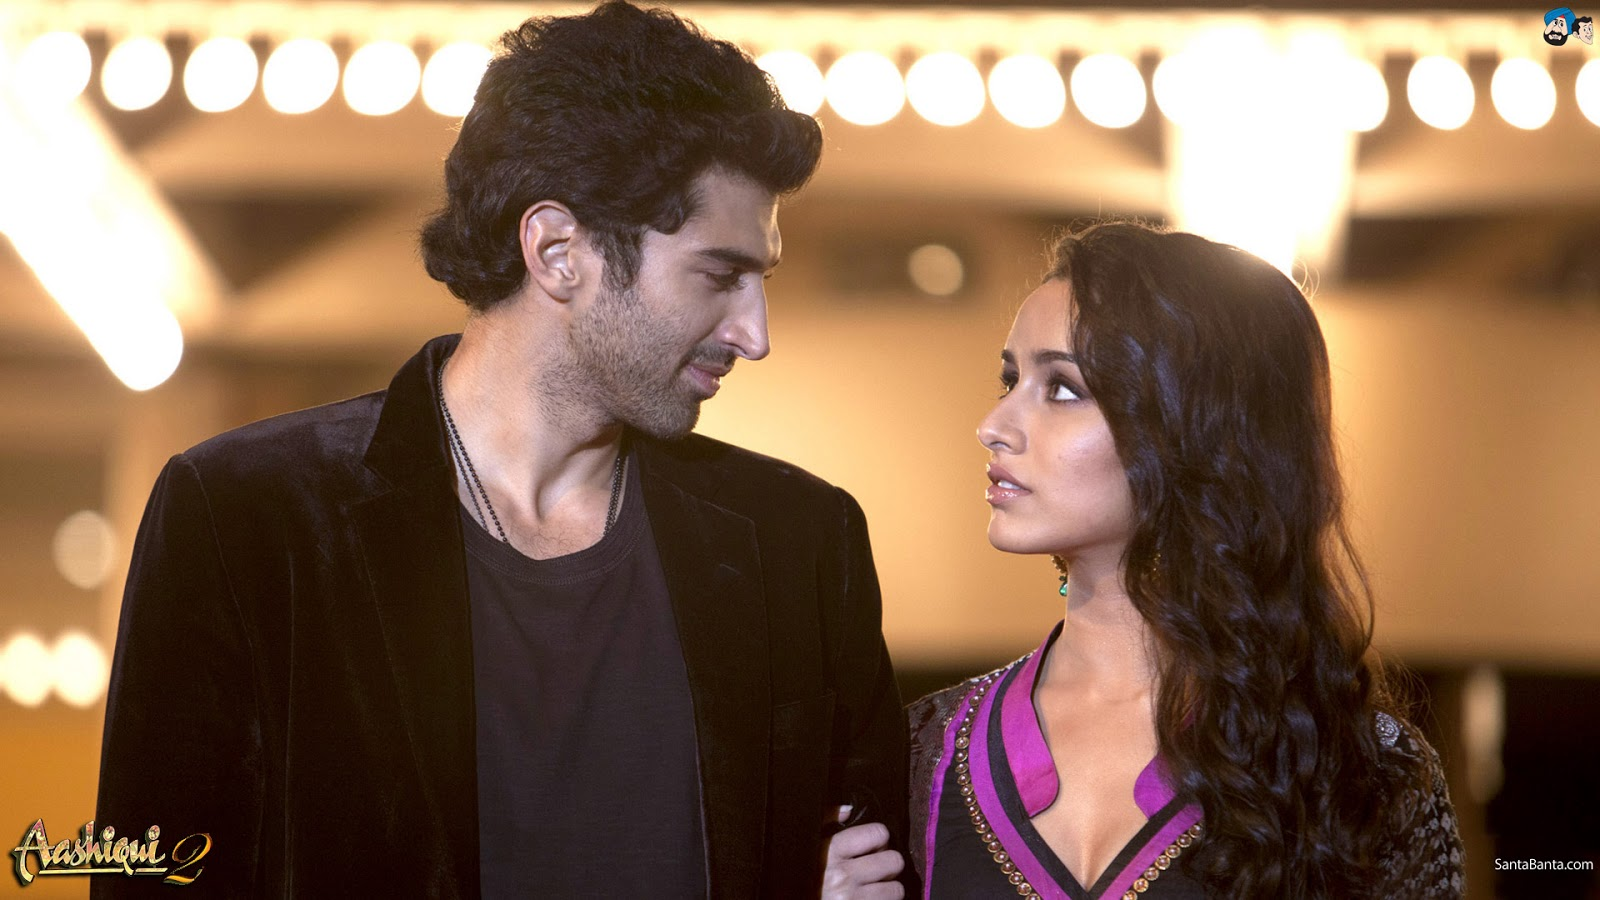 Aashiqui 2 movie hd wallpapers music is my life - Couple wallpaper download ...